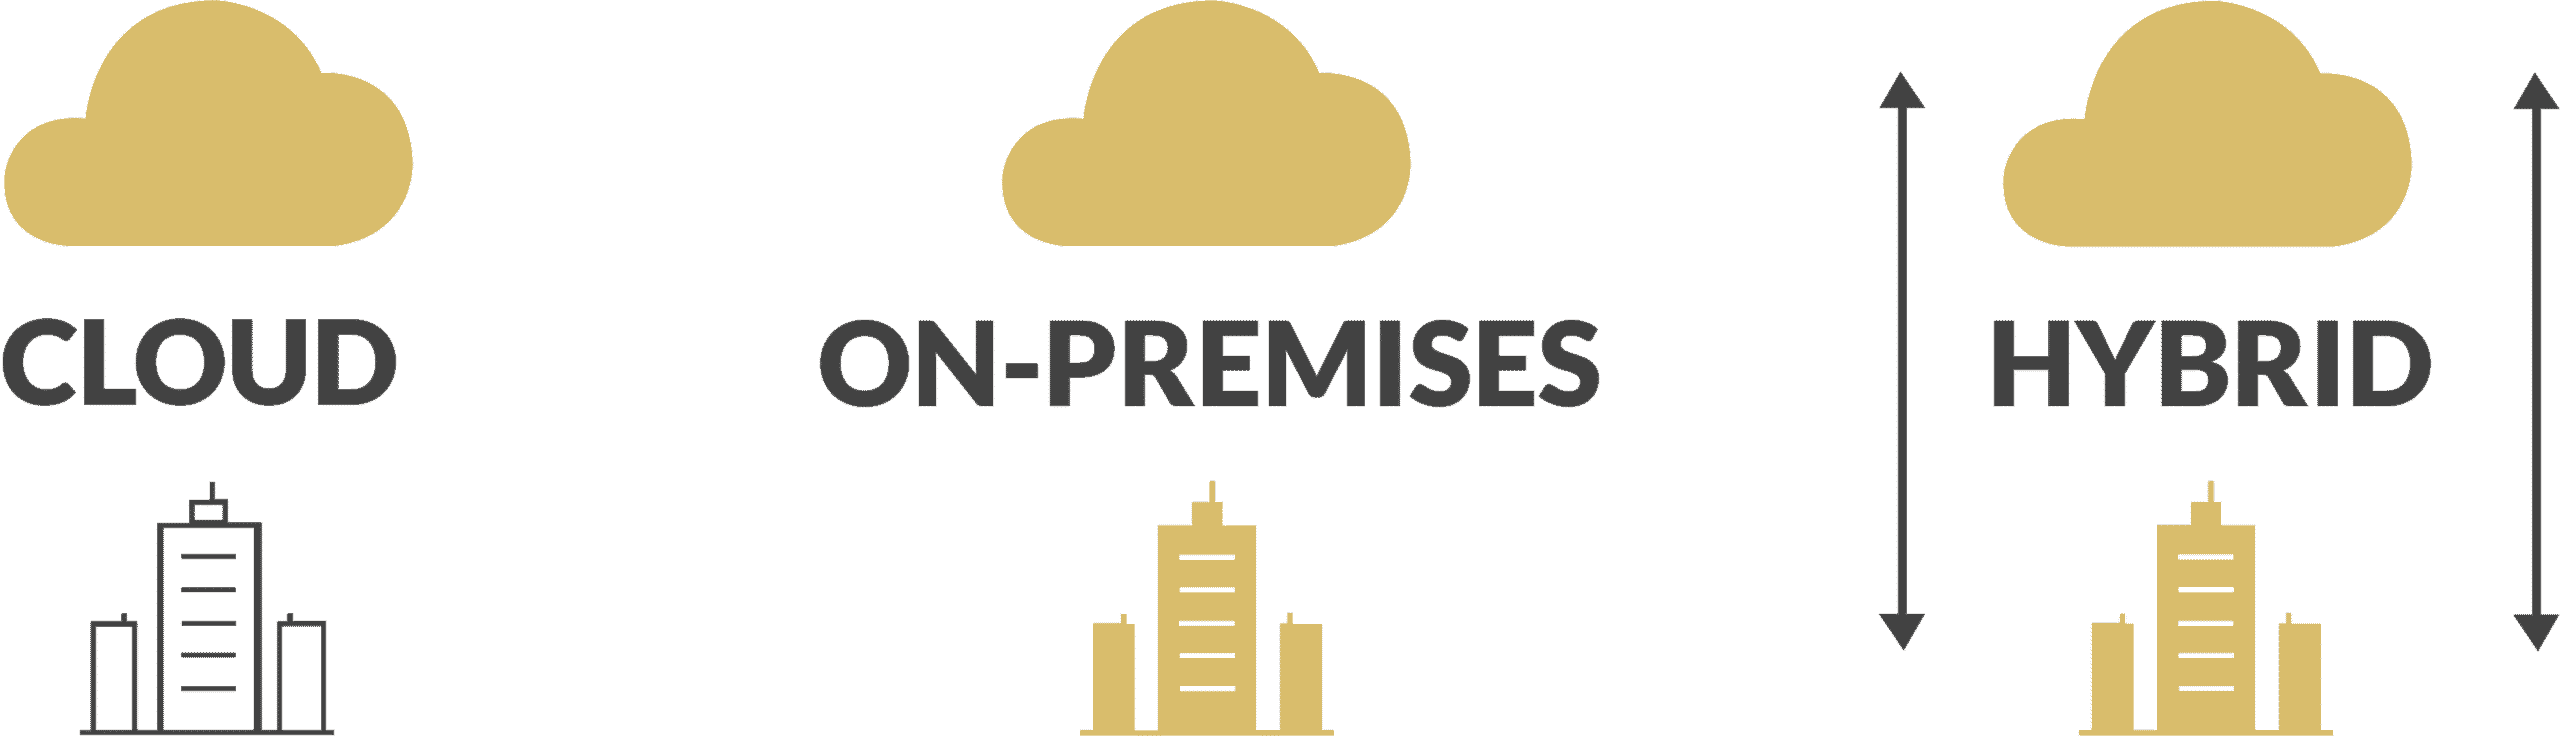 Cloud-on-premise